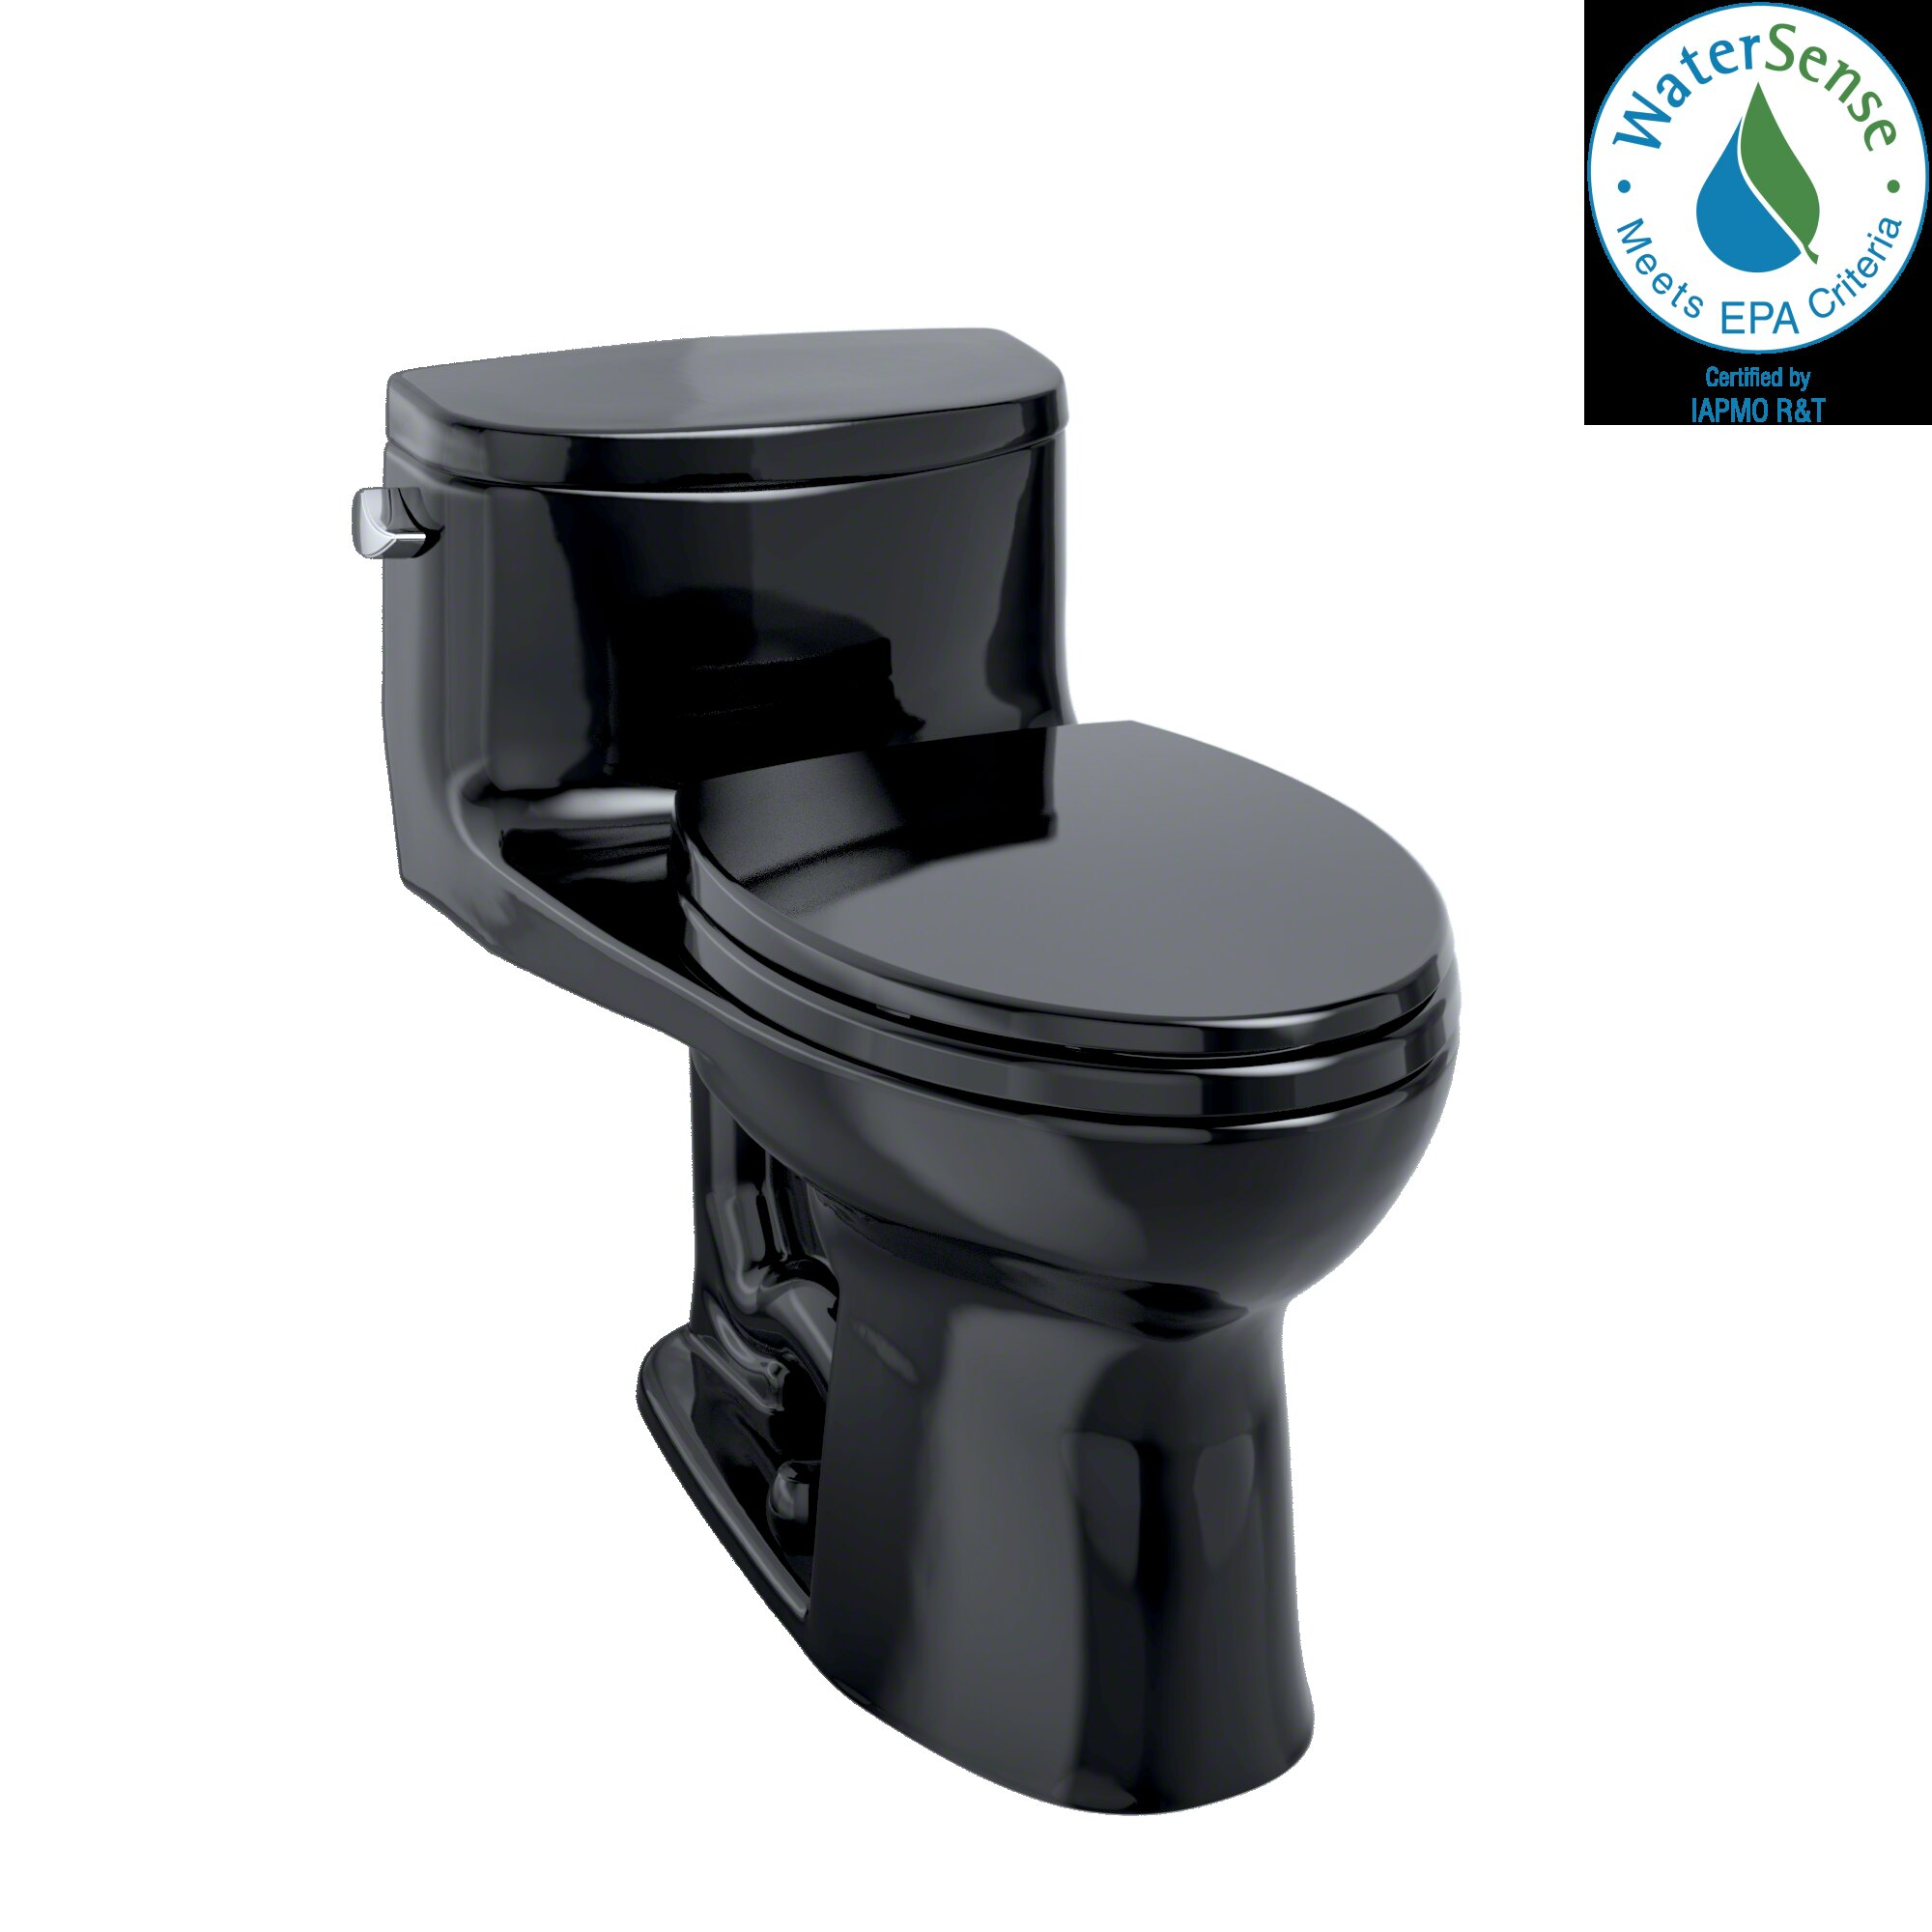 Ms634114cef 51 Supreme Ii High Efficiency 1 28 Gpf Elongated One Piece Toilet Seat Included